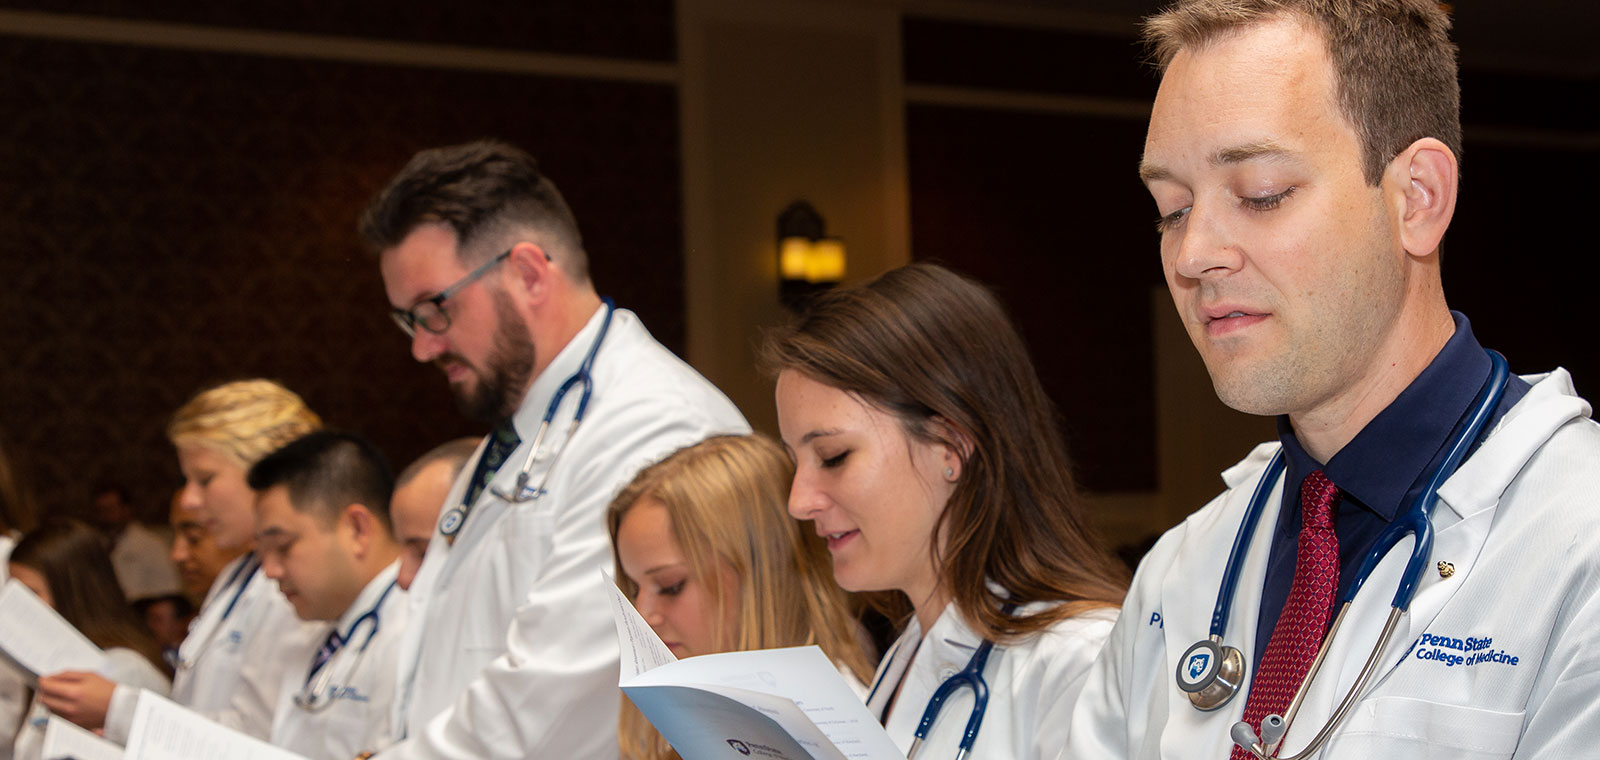 Students in the Physician Assistant Program at Penn State College of Medicine take part in the White Coat Ceremony in 2016, during which the students receive their white coats signifying the start of their training. Three female students are seen in the foreground, reading from the event program, with a male and female student visible in the background.